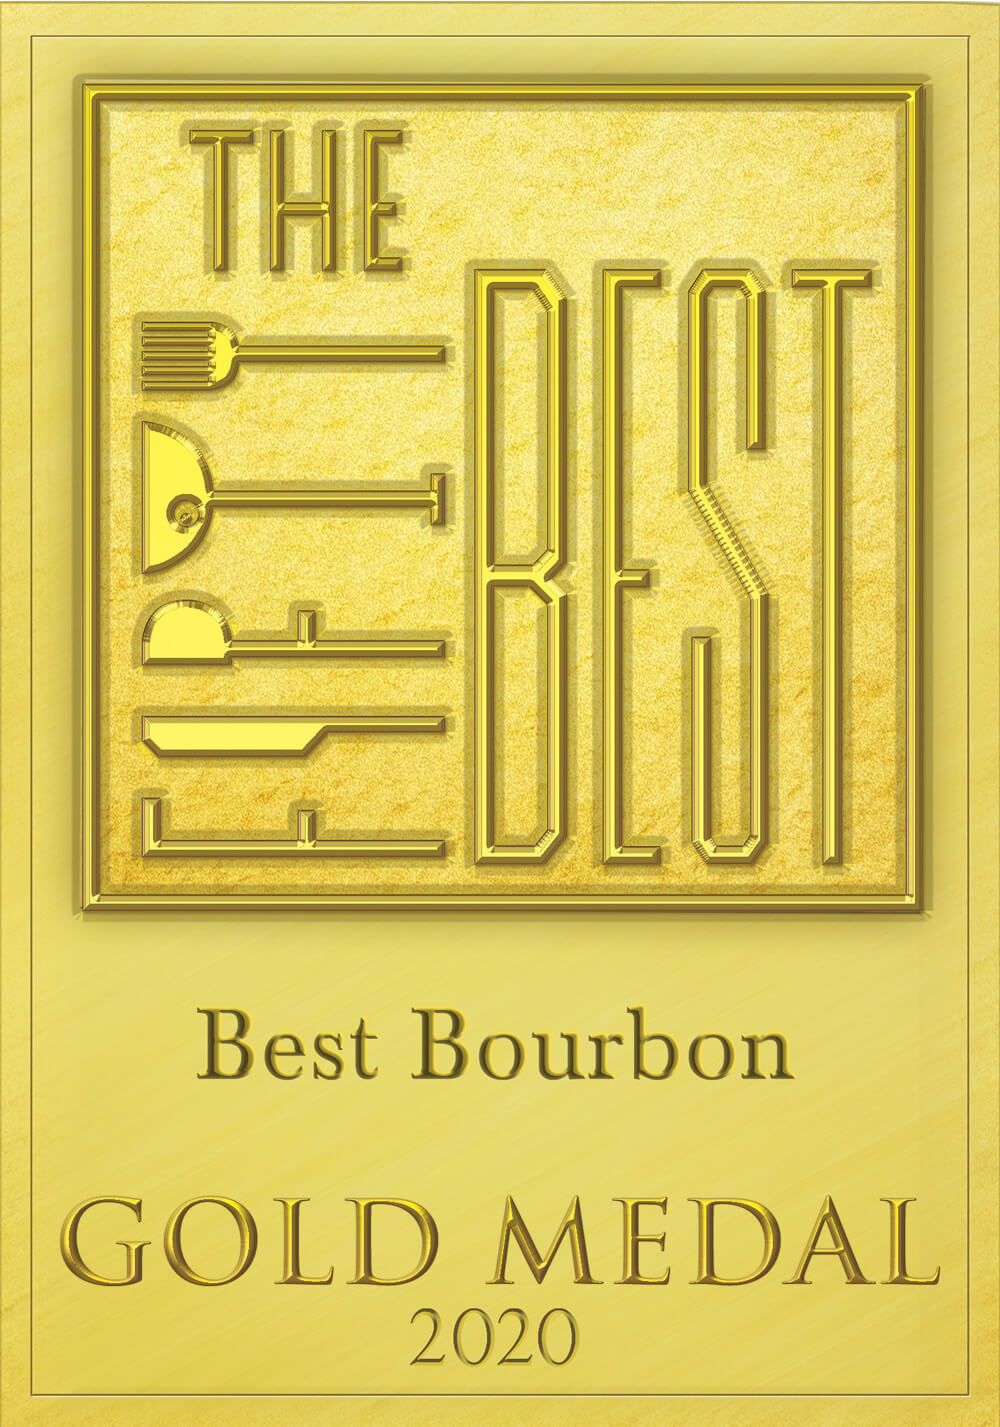 TheFiftyBest_GoldMedal_Bourbon_2020